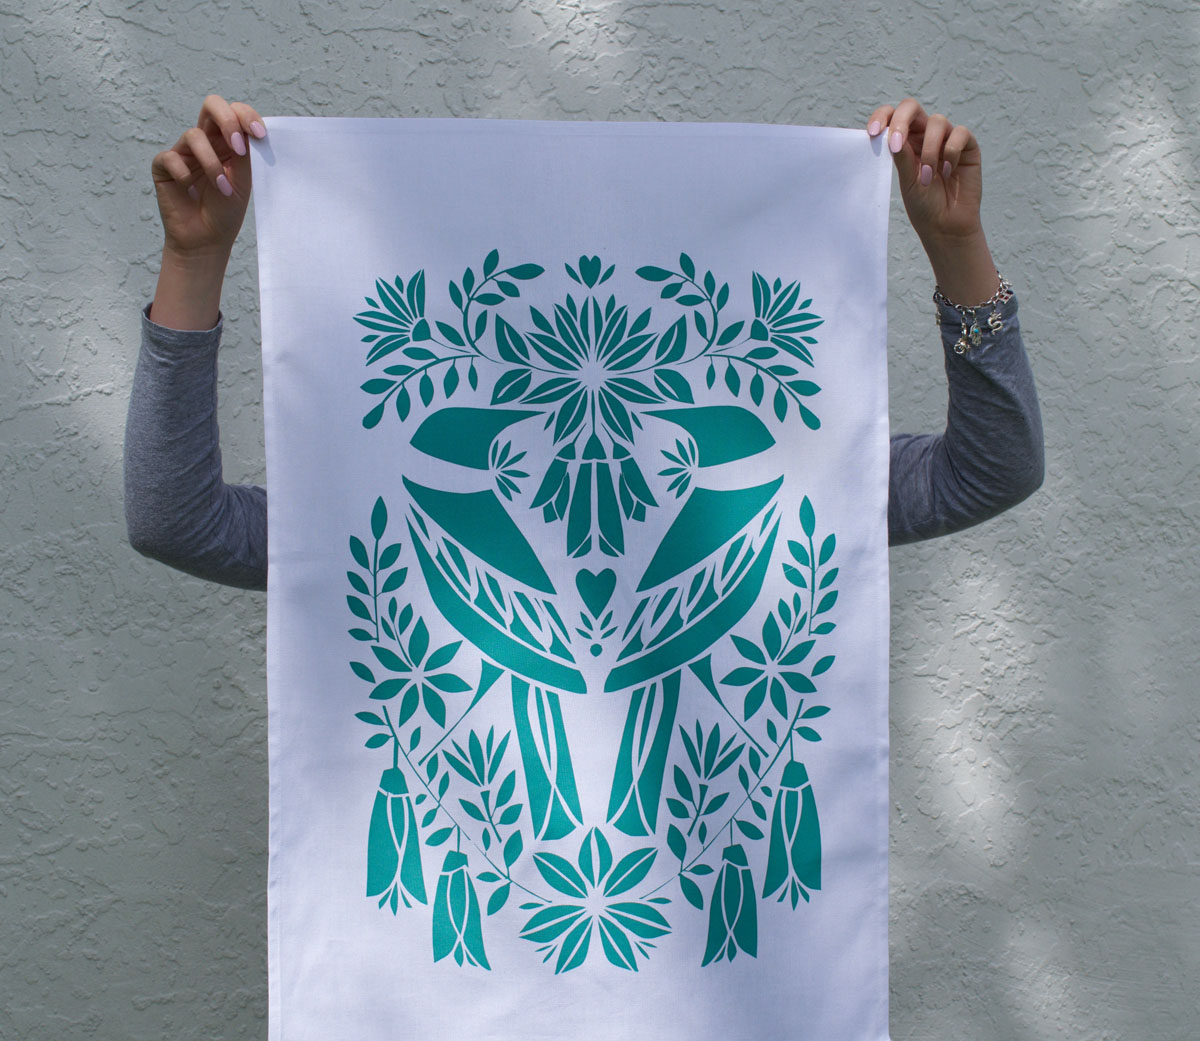 Tea Towels Printed For Schools: Two Teal Tui Limited Edition Hand Screen Printed Tea Towel